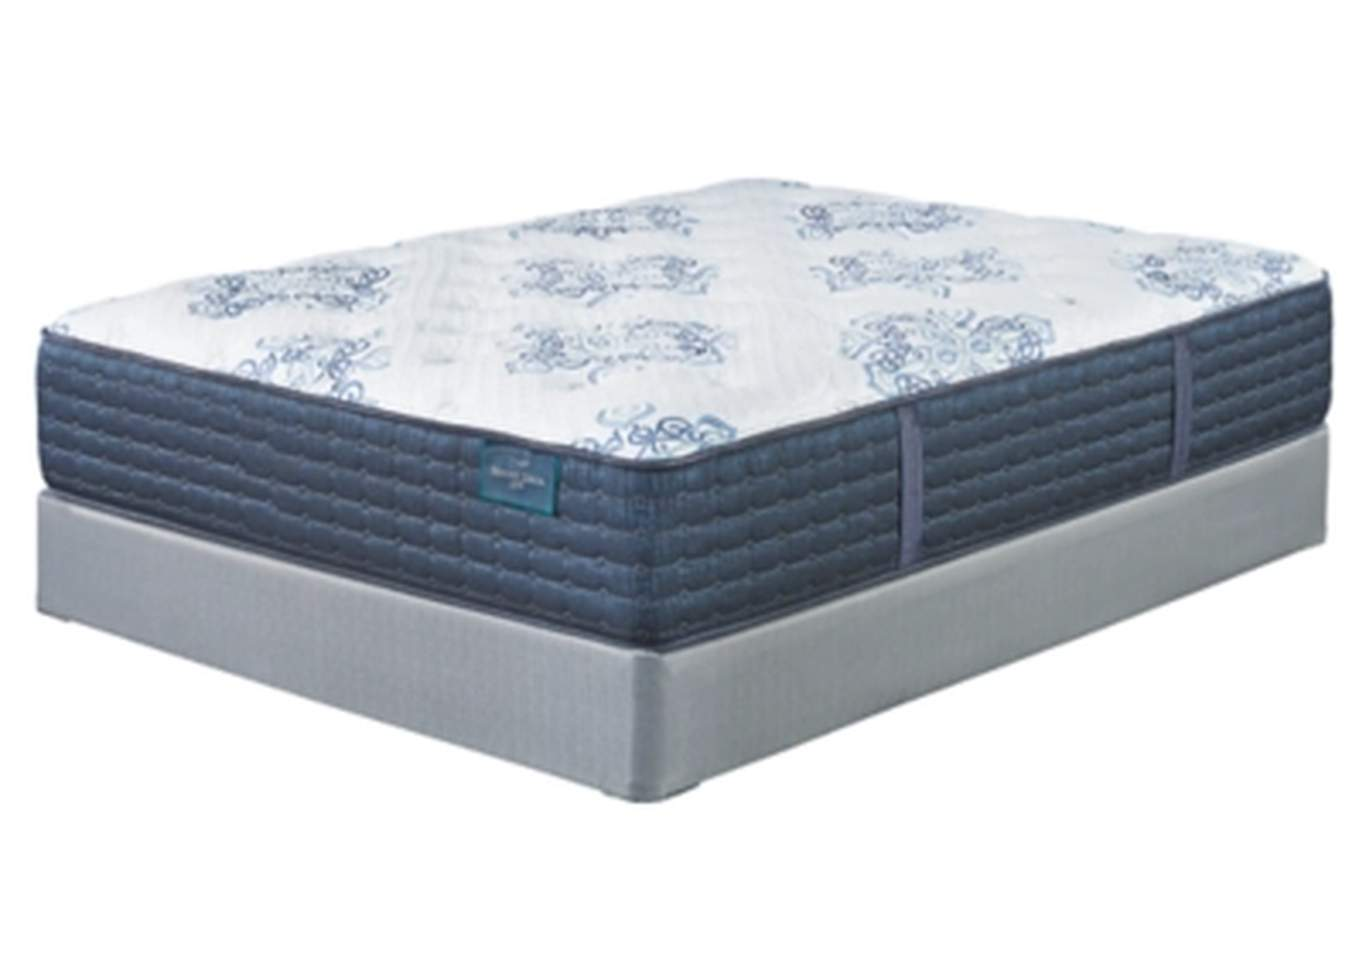 Mt. Dana Firm White Twin Mattress,Sierra Sleep by Ashley